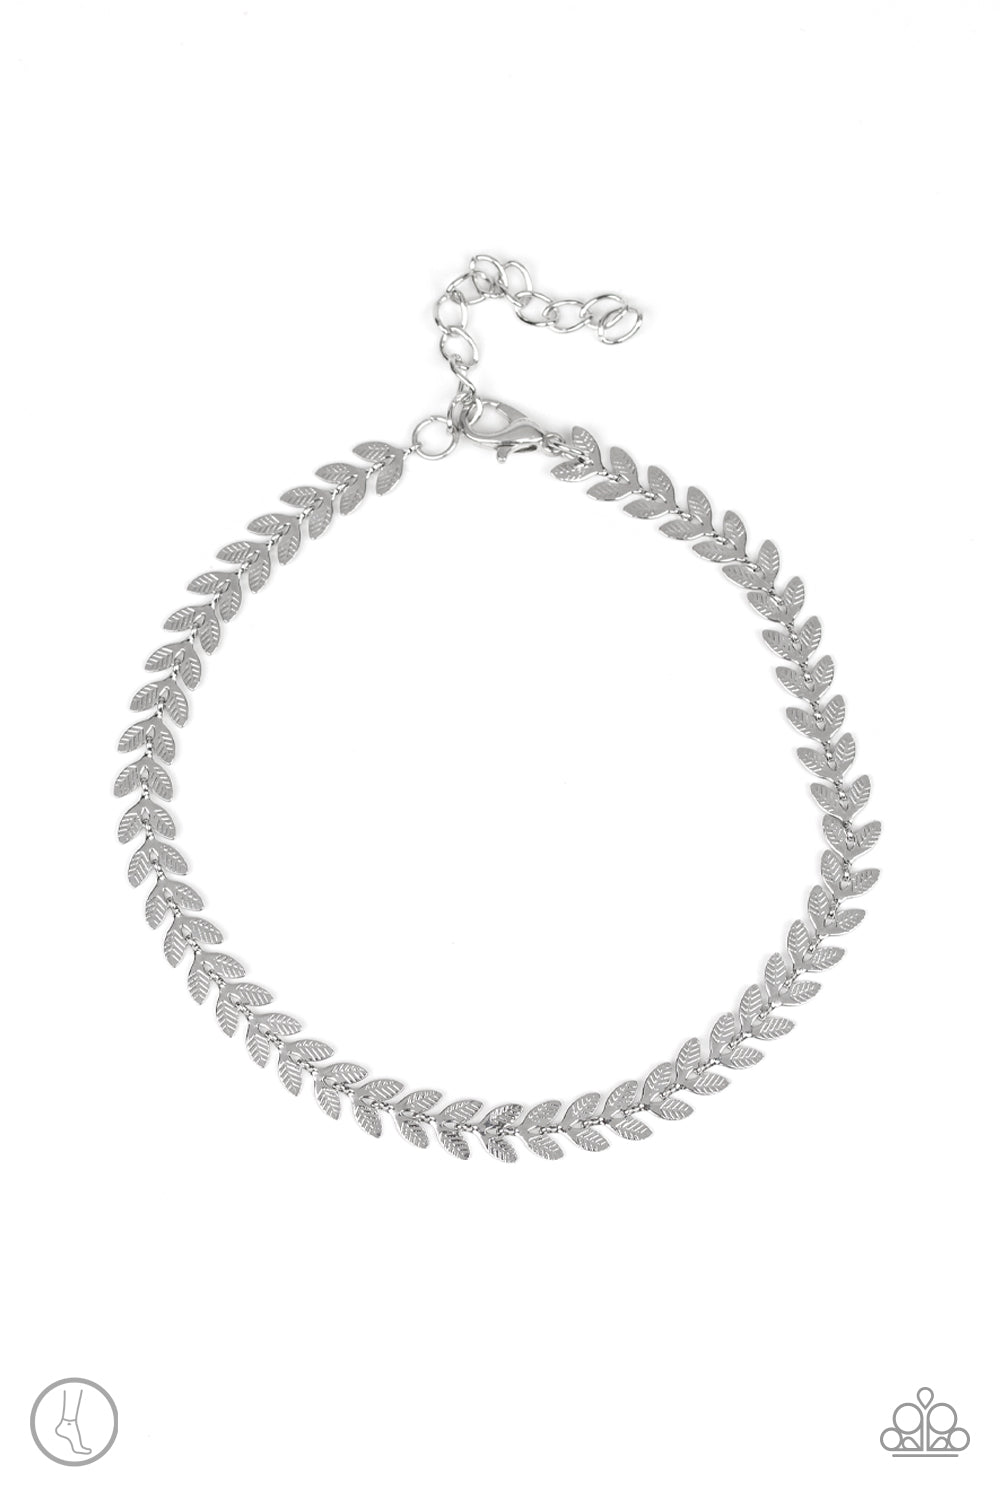 Paparazzi Accessories - West Coast Goddess - Silver Anklet - JMJ Jewelry Collection